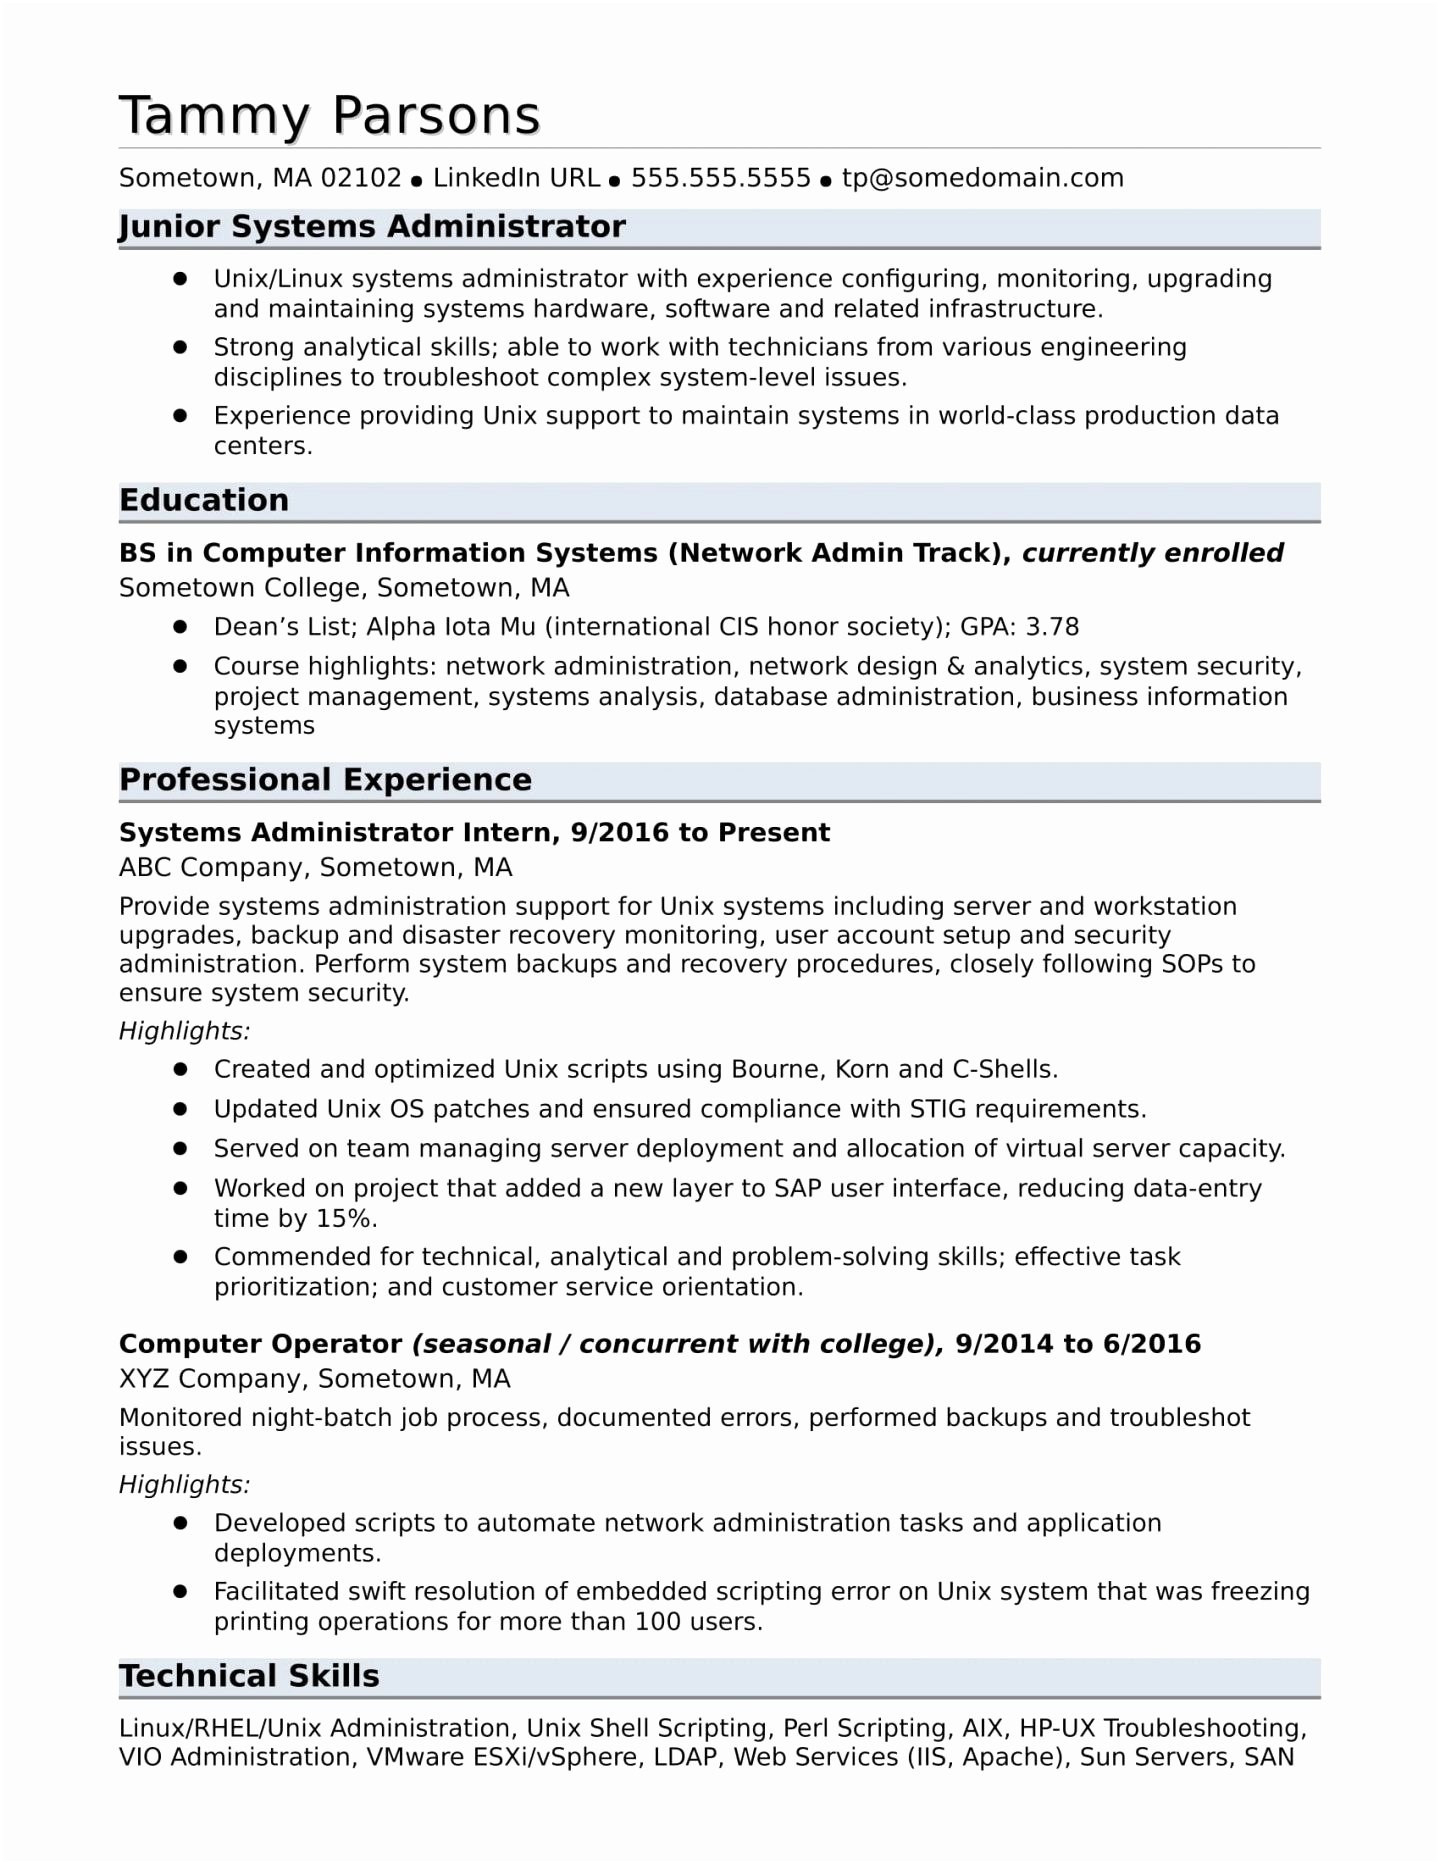 Software Developer Resume Sample - Junior Web Developer Resume Utd Resume Template Unique Fishing